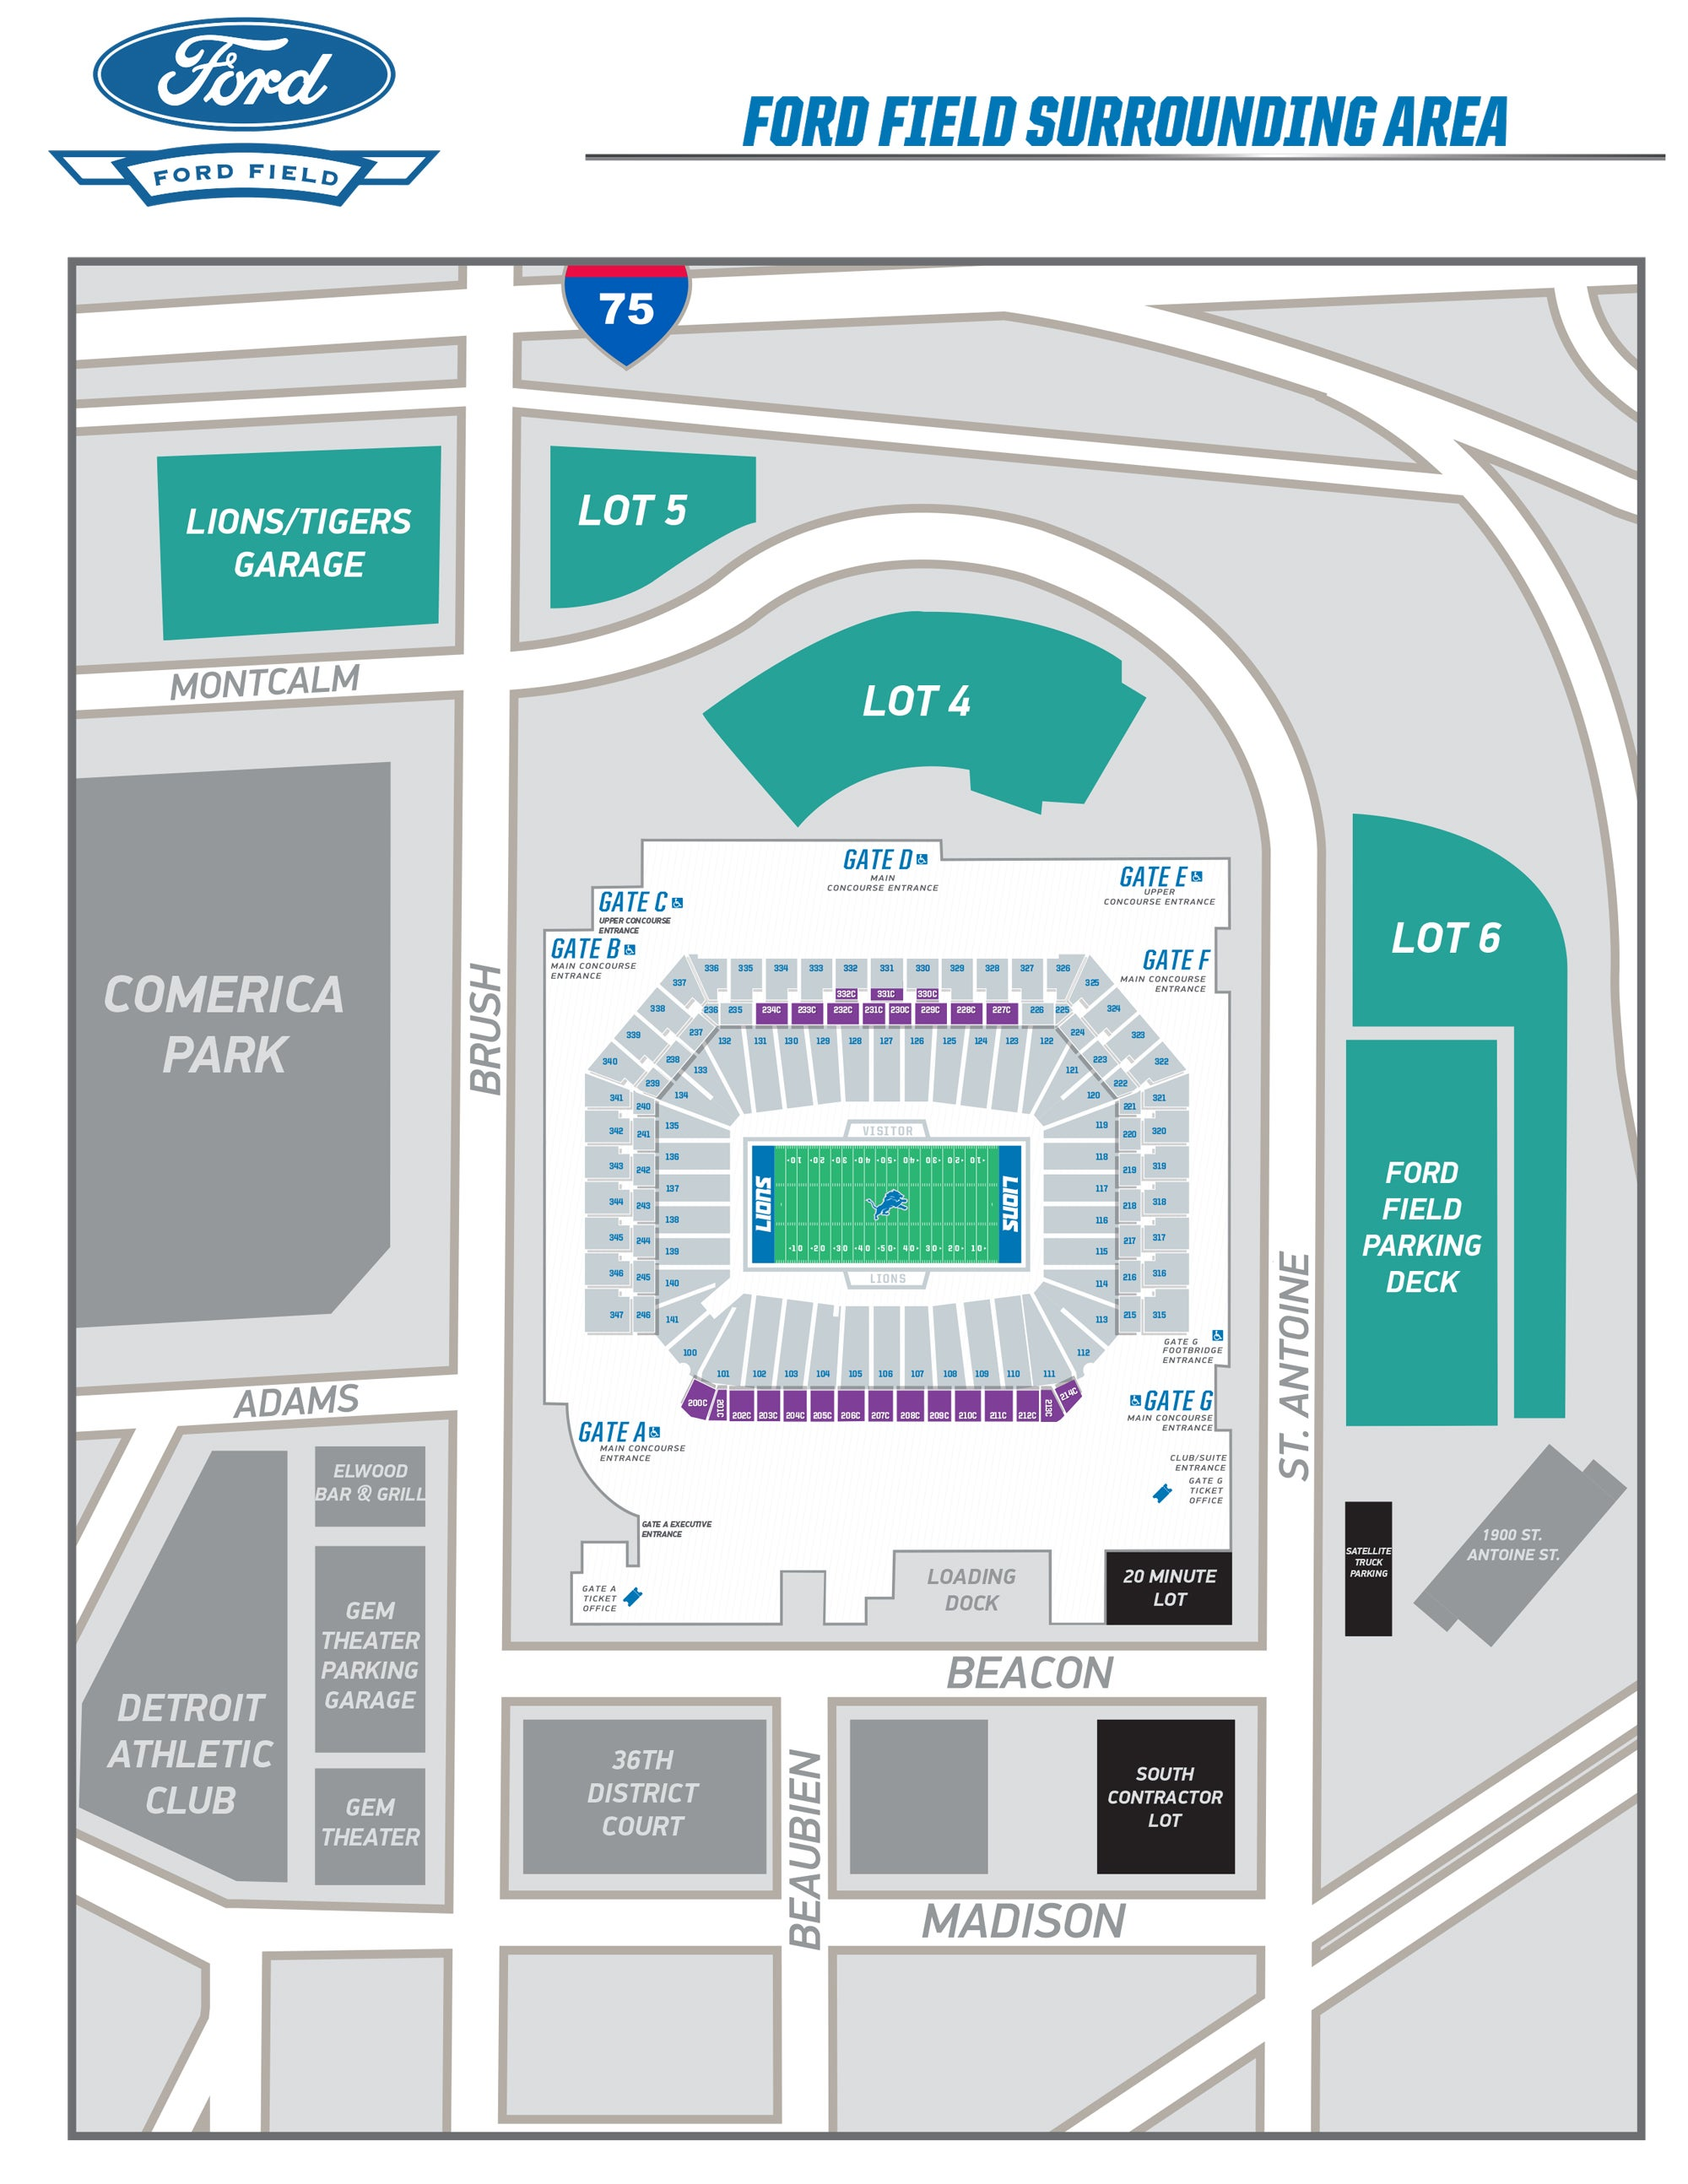 Ford Field Concert Seating Chart : field, concert, seating, chart, Seating, Field